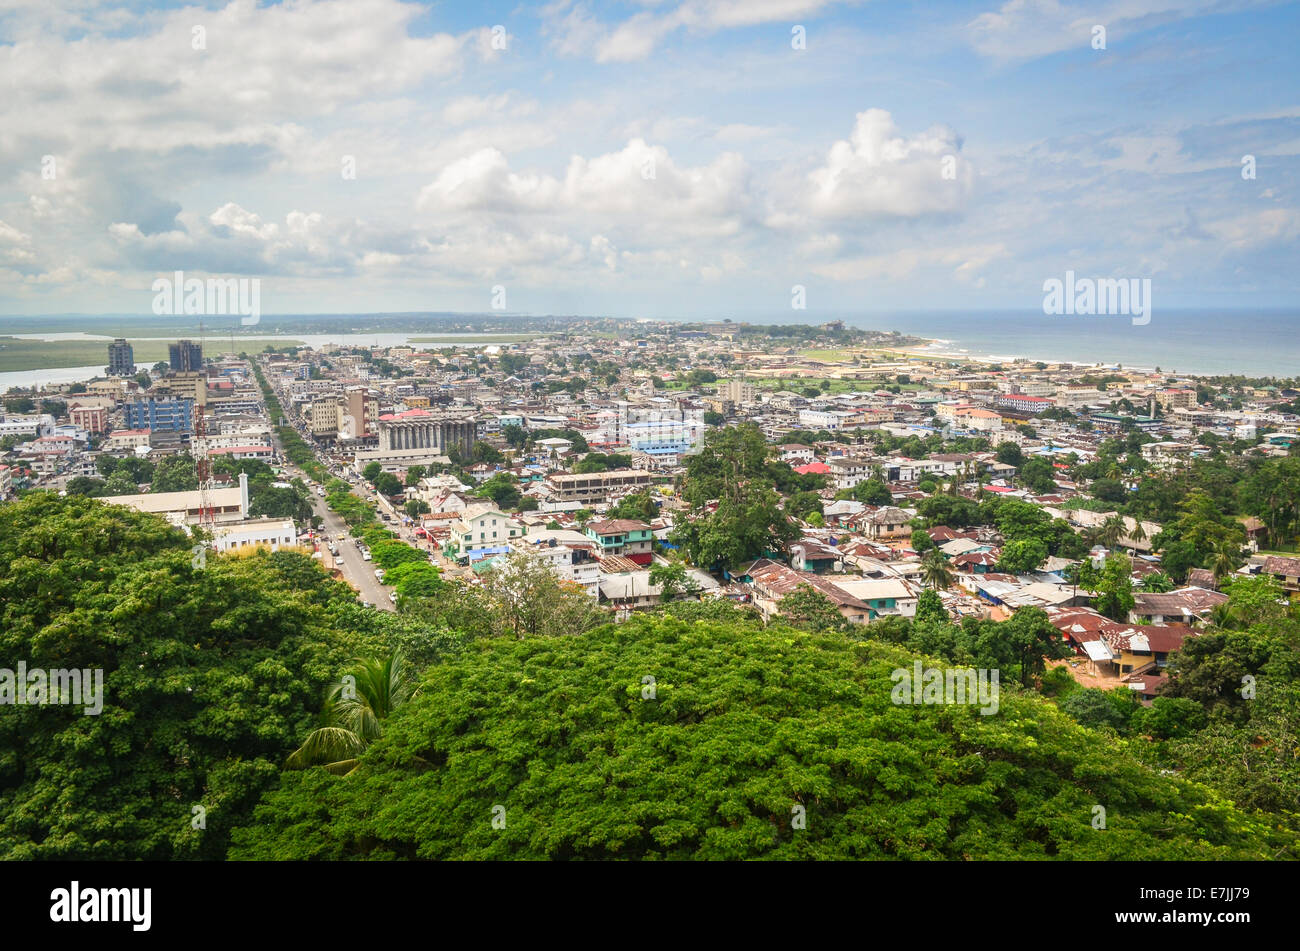 Aerial view of the city of Monrovia, Liberia, taken from the top of the ruins of Hotel Ducor - Stock Image